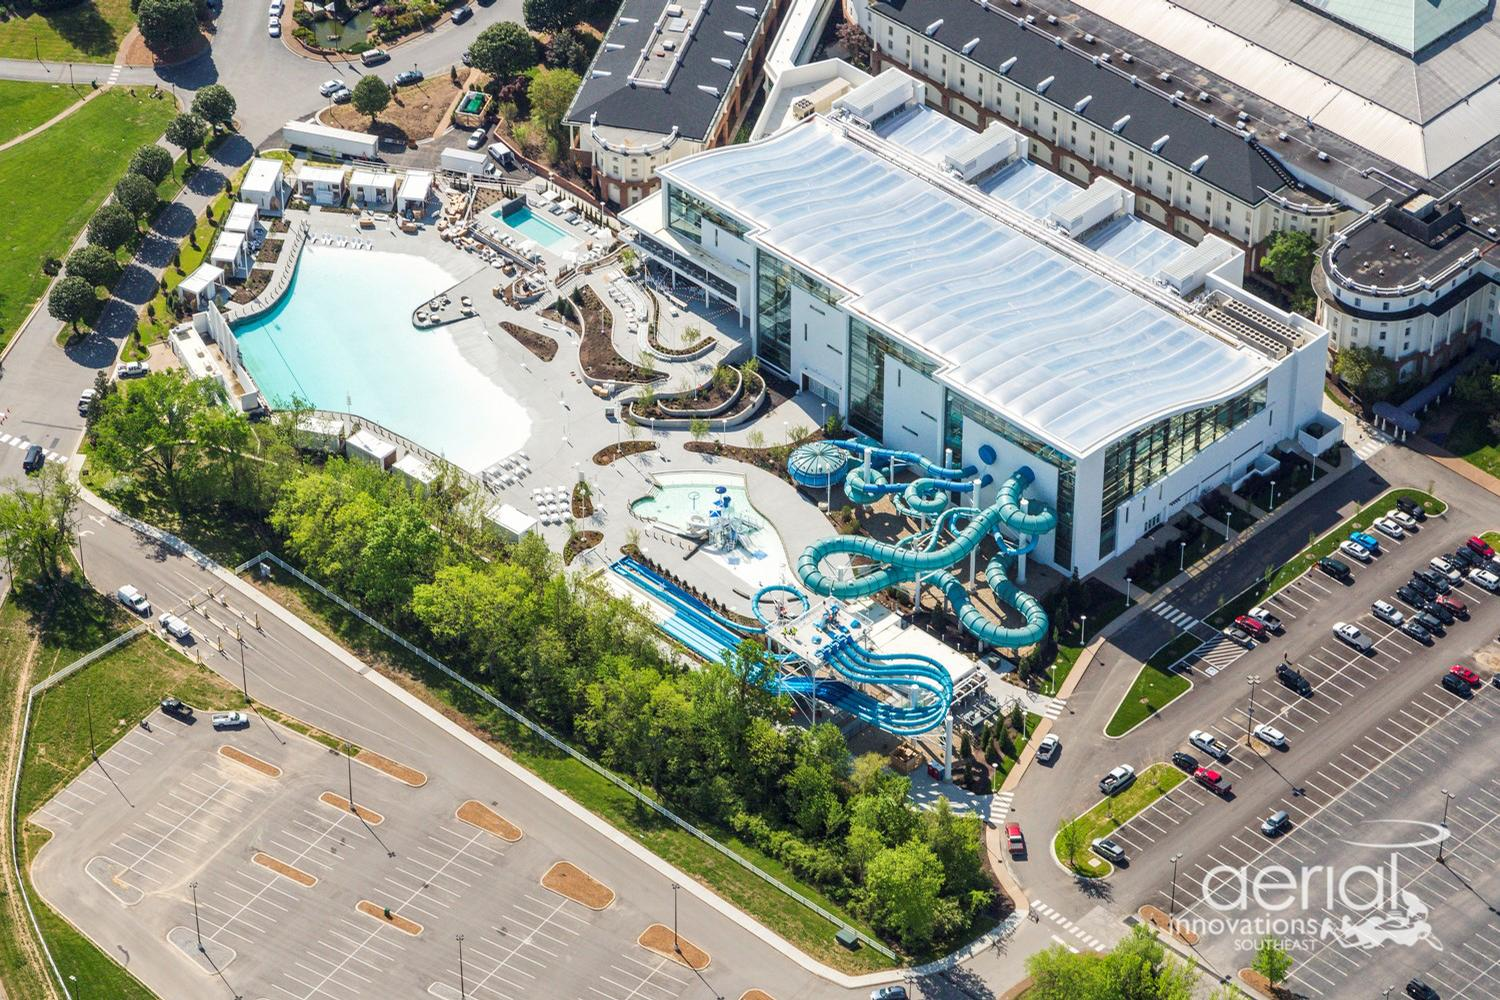 The Soundwaves indoor/outdoor water experience is a US$90m development